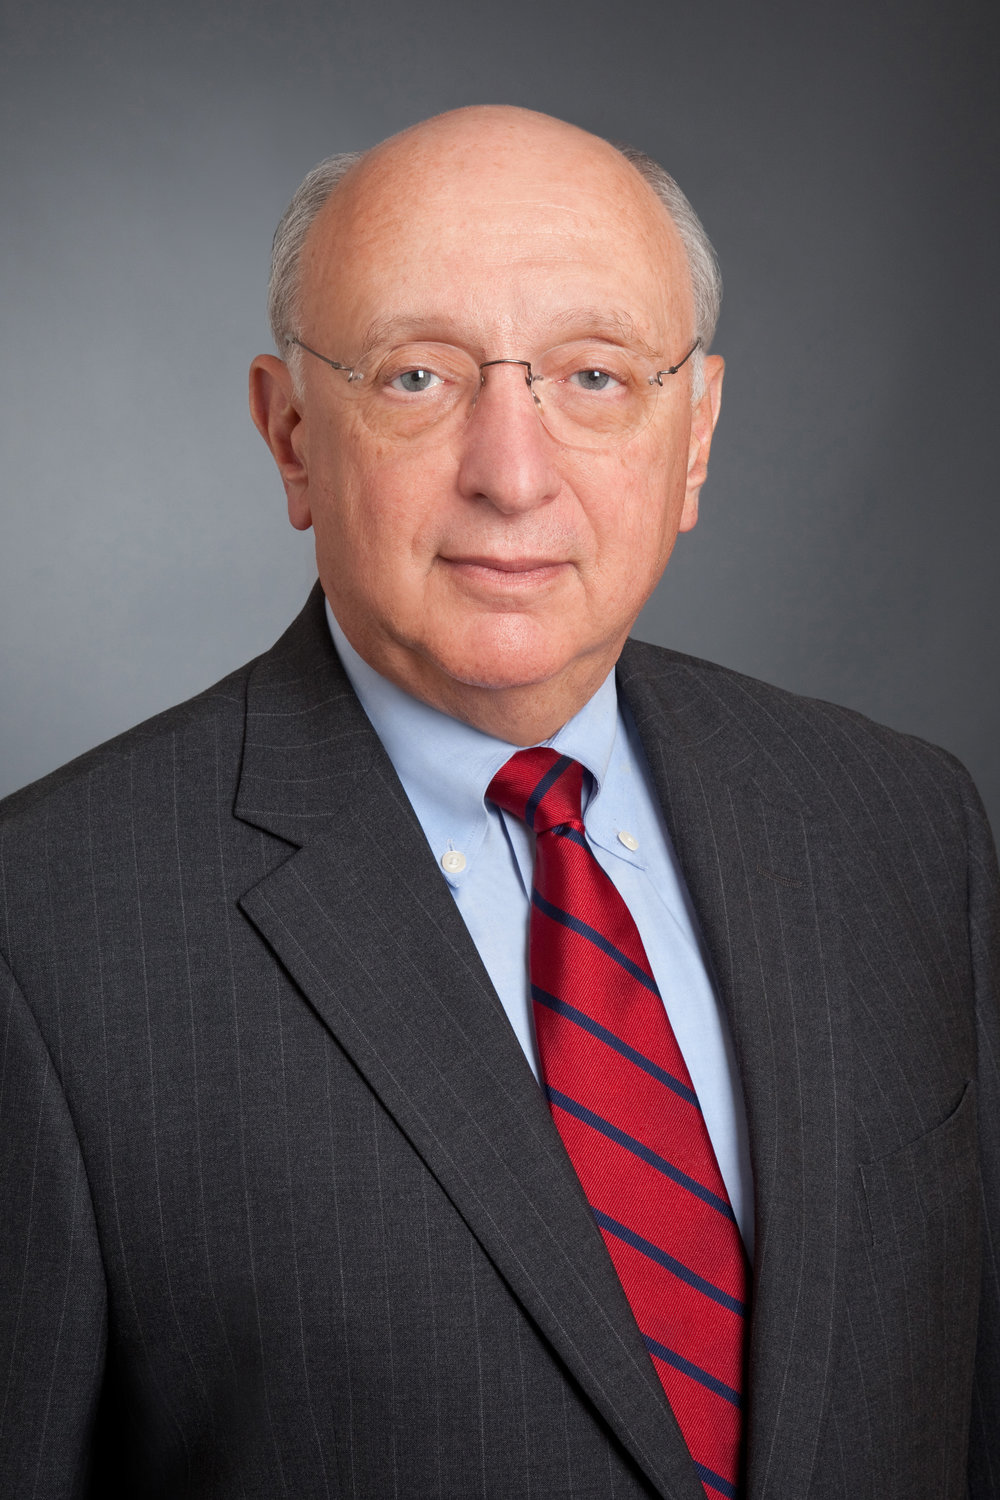 Stanley C. Ruchelman, Co-Chair of the New York State Bar Association, International Section's Committee on International Tax